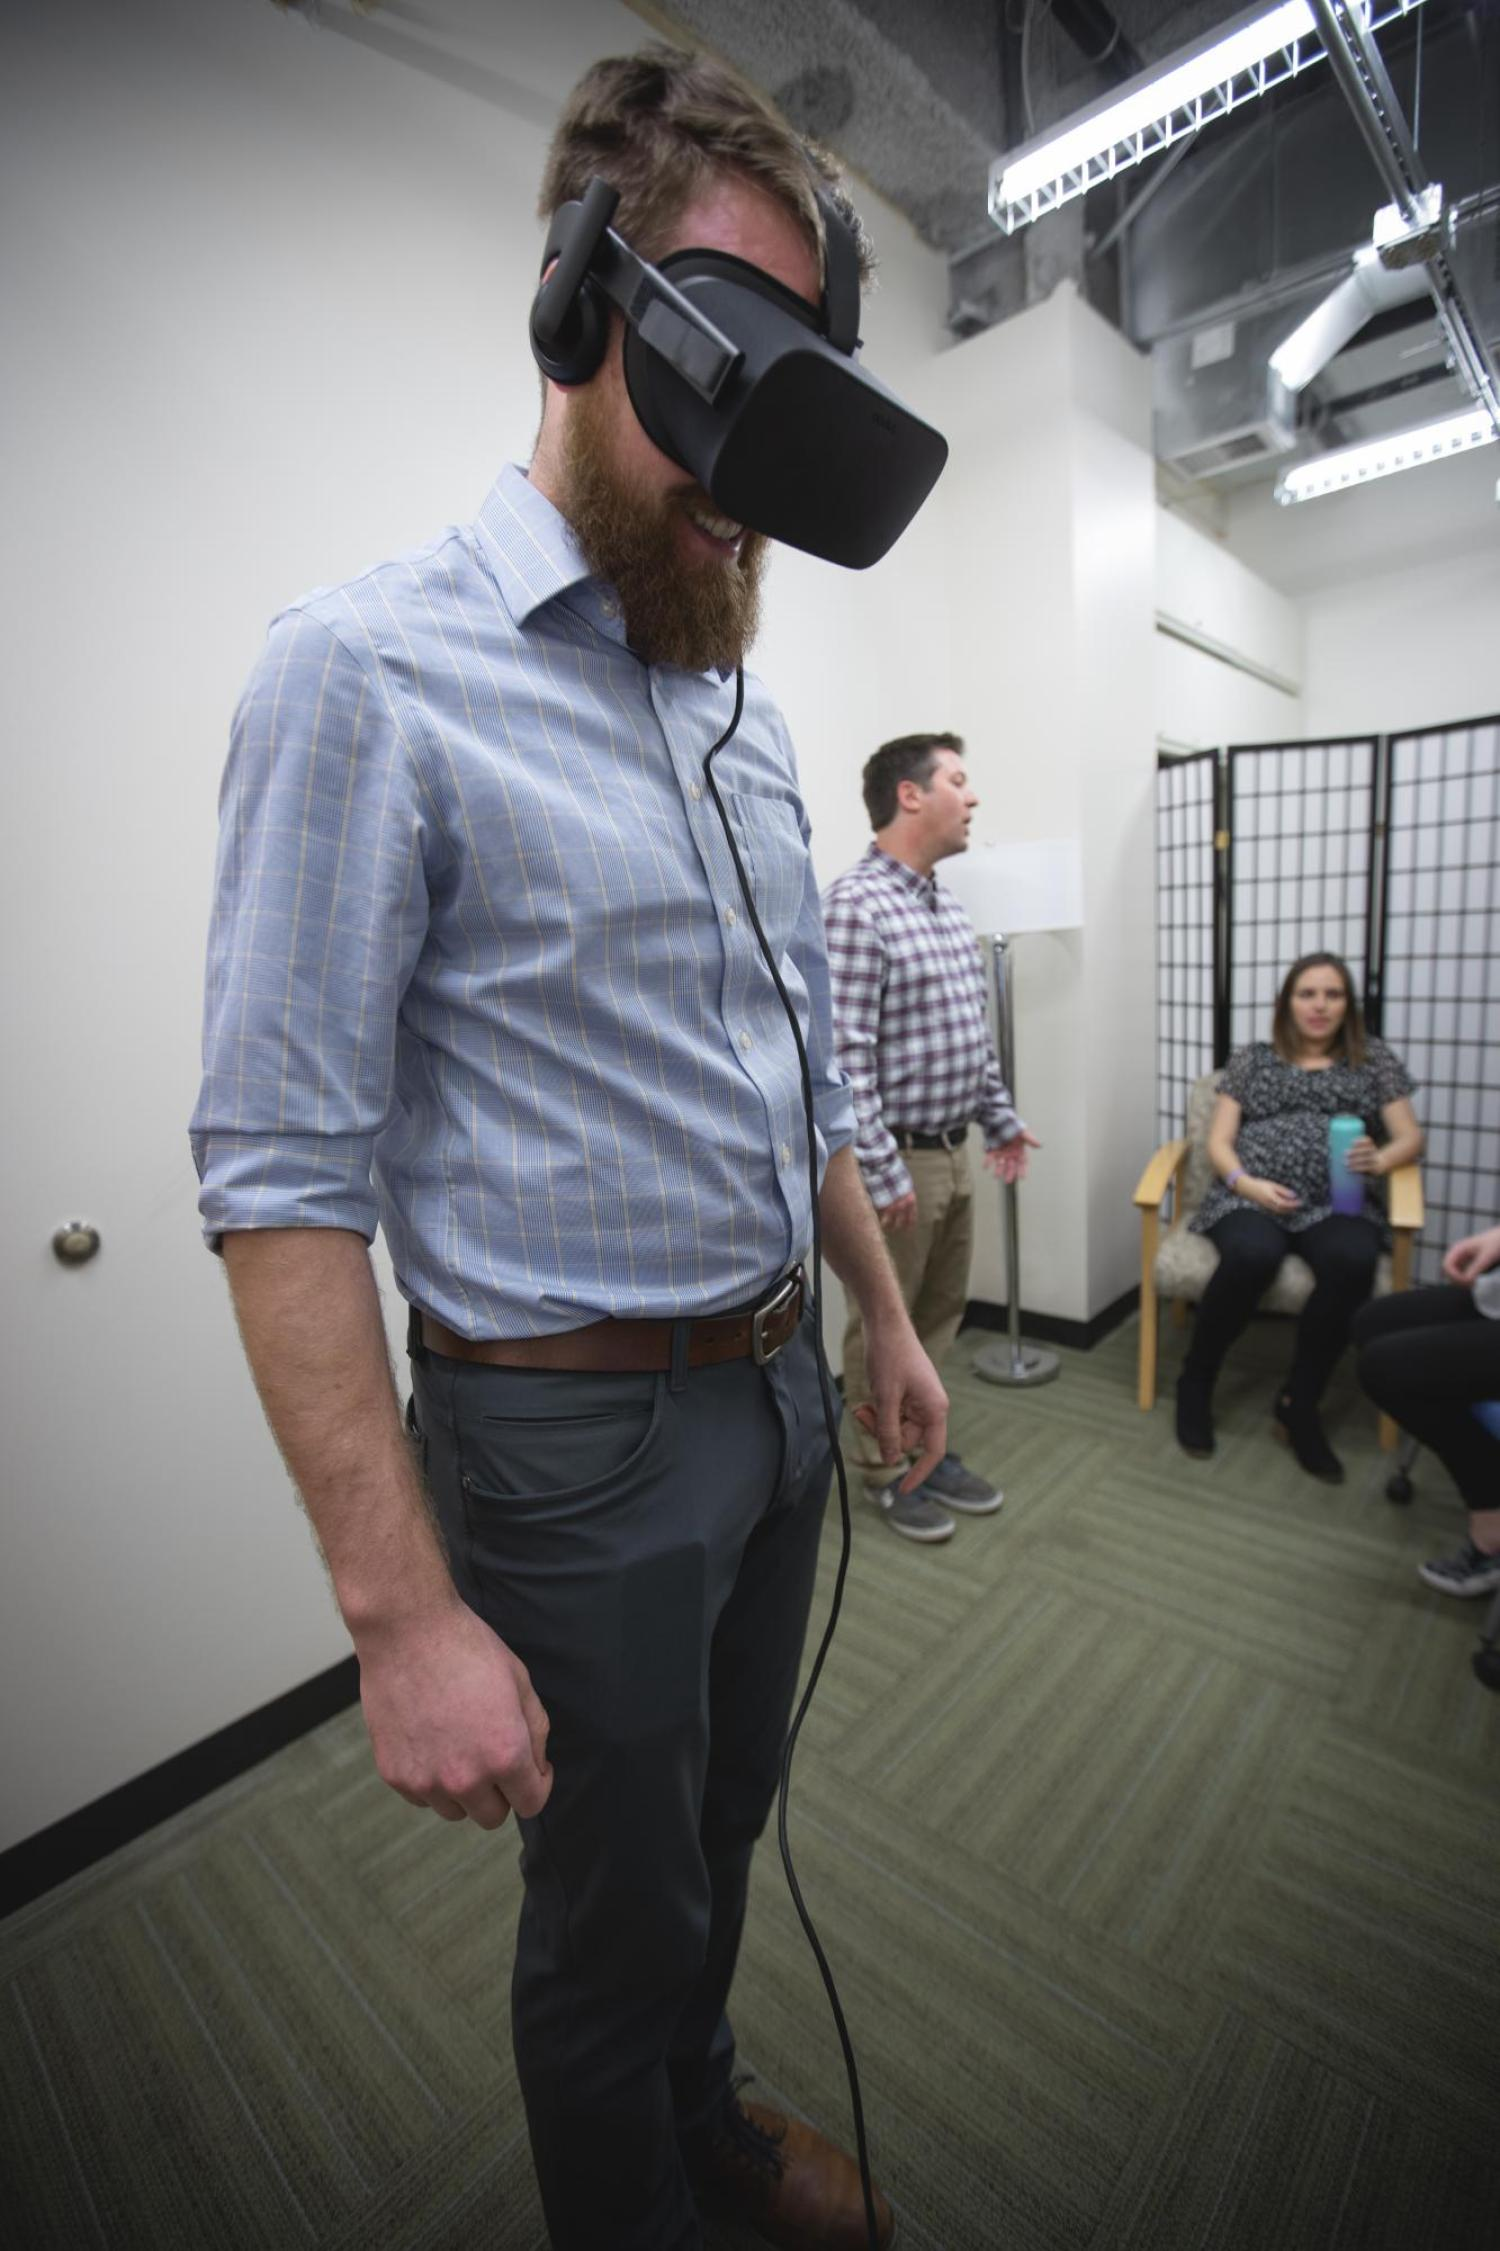 Virtual Therapy Expanding Mental Health >> Mental Health Where Virtual Reality Meets Real Life Cu Boulder